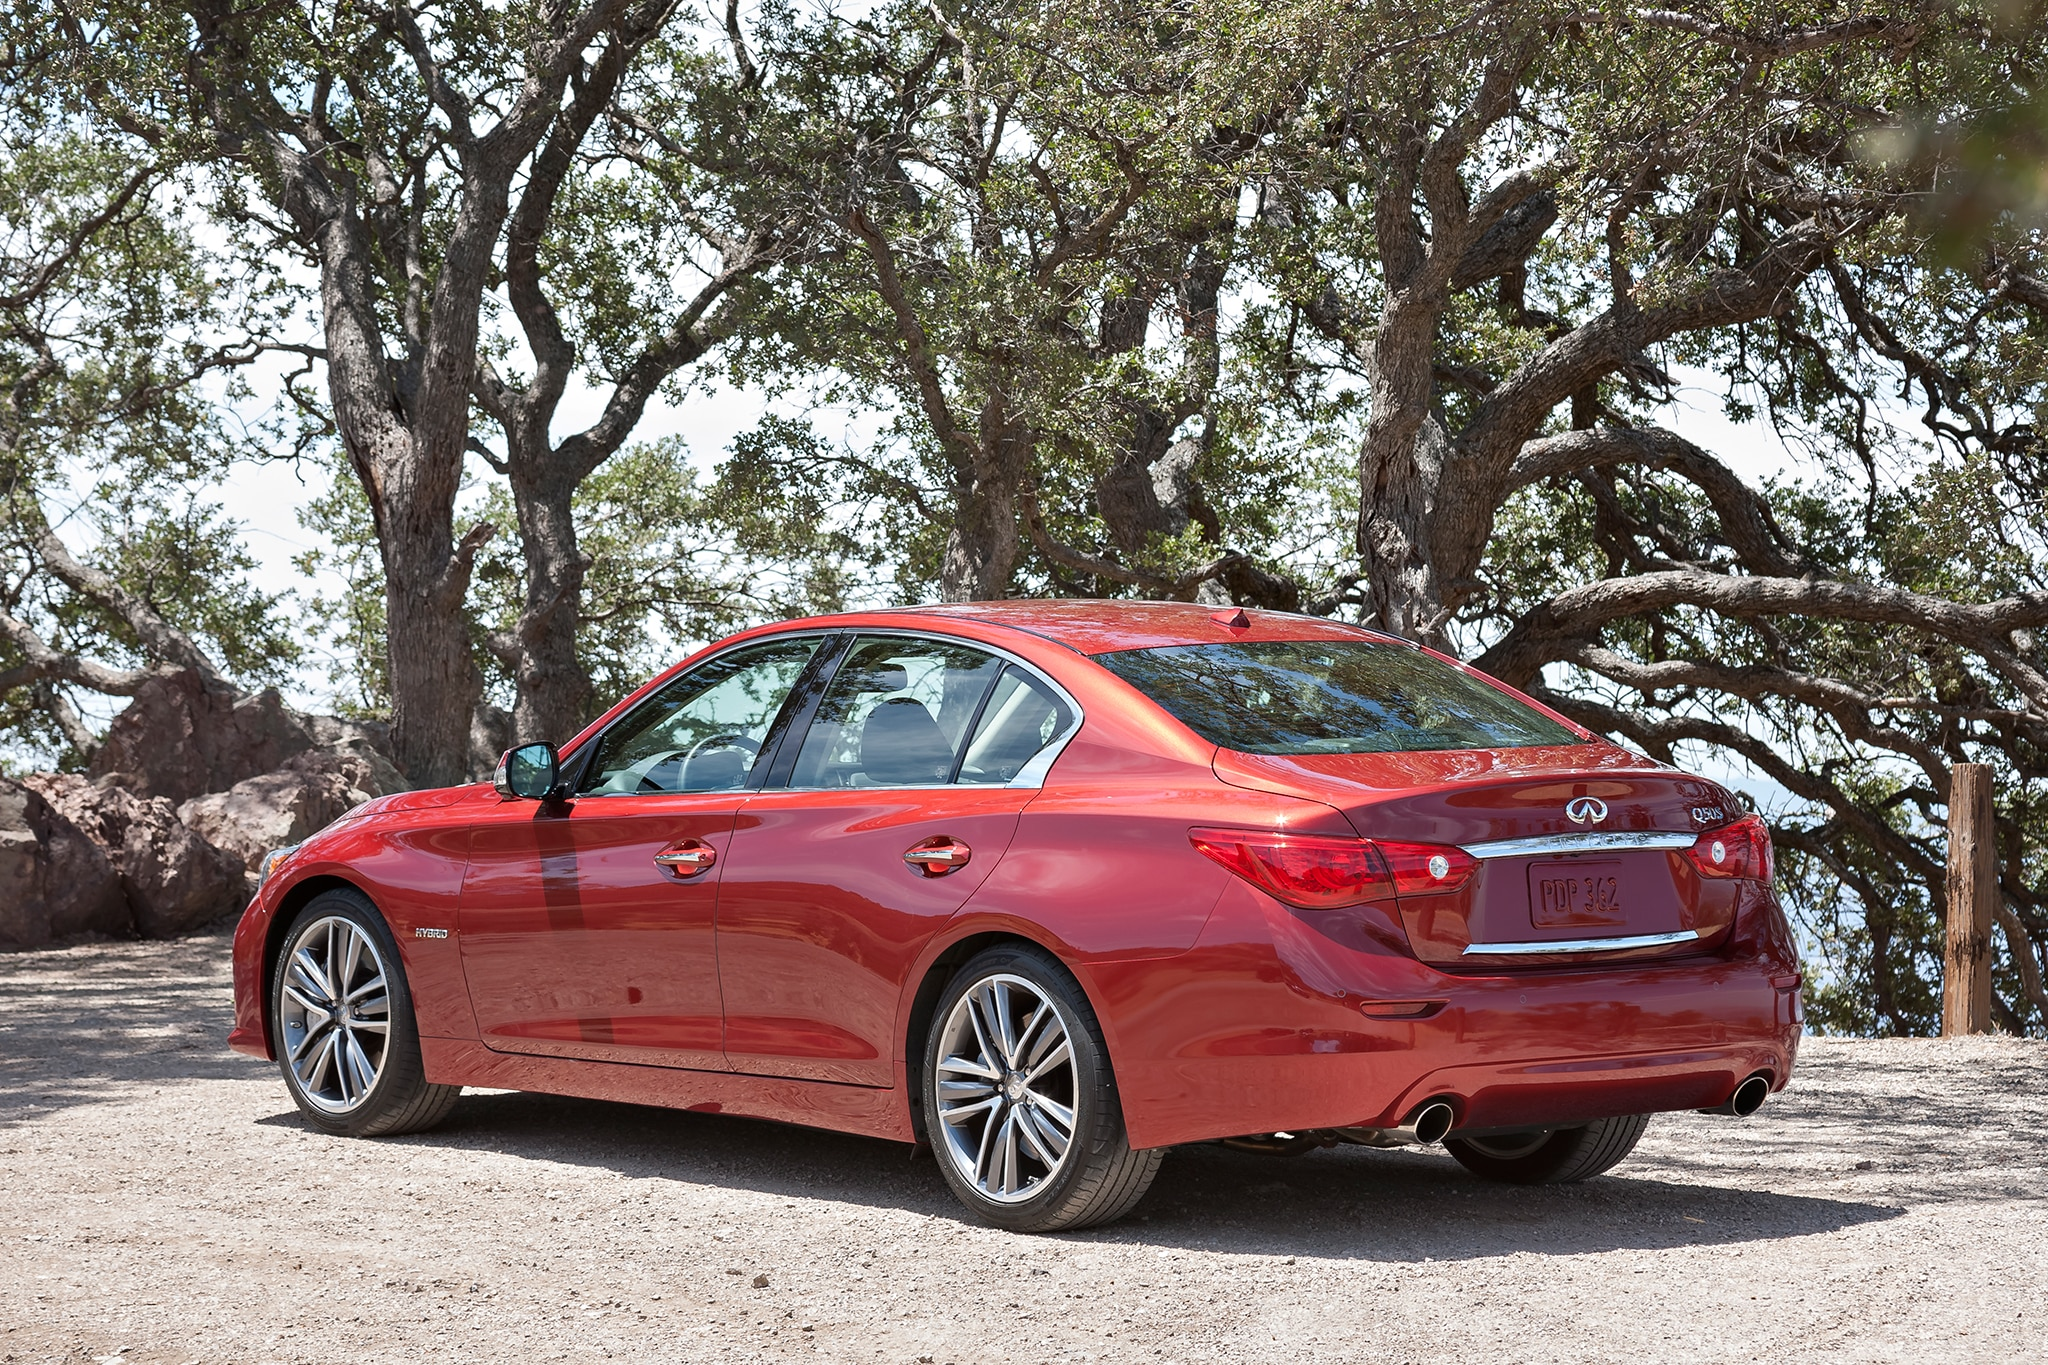 recalled 2014 infiniti q50 sedan 1 2 million michelin. Black Bedroom Furniture Sets. Home Design Ideas